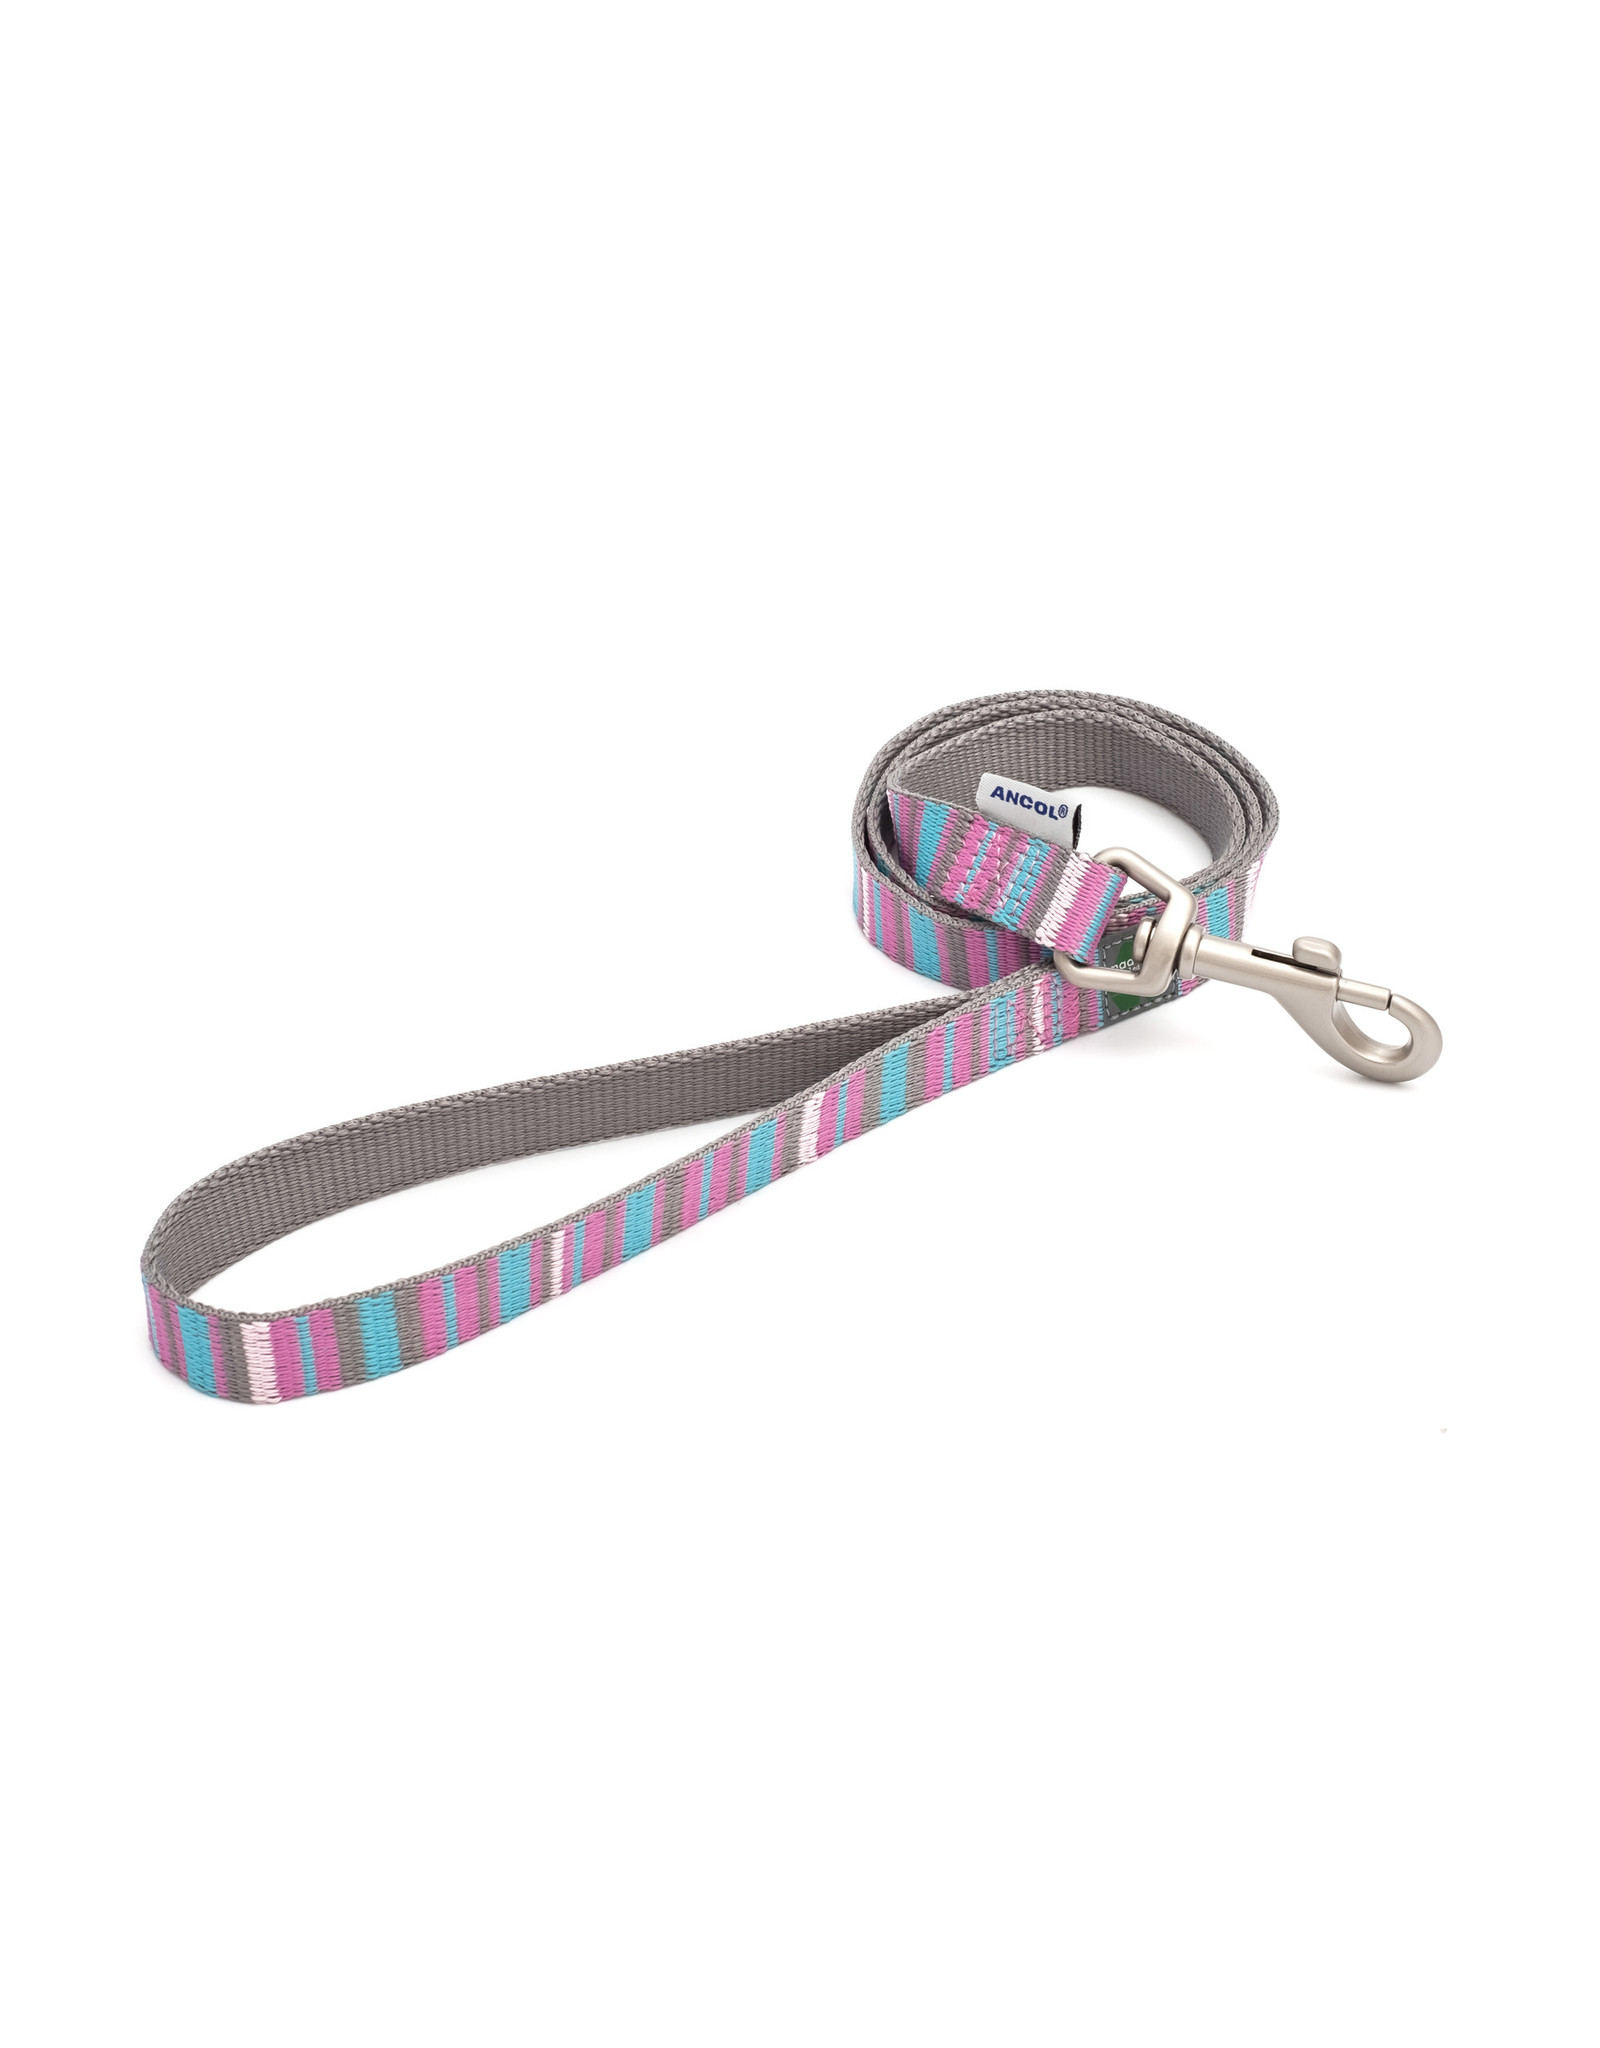 Ancol Dog Lead Made From Recycled Materials, Pink Candy Stripe, 100 x 1.9cm